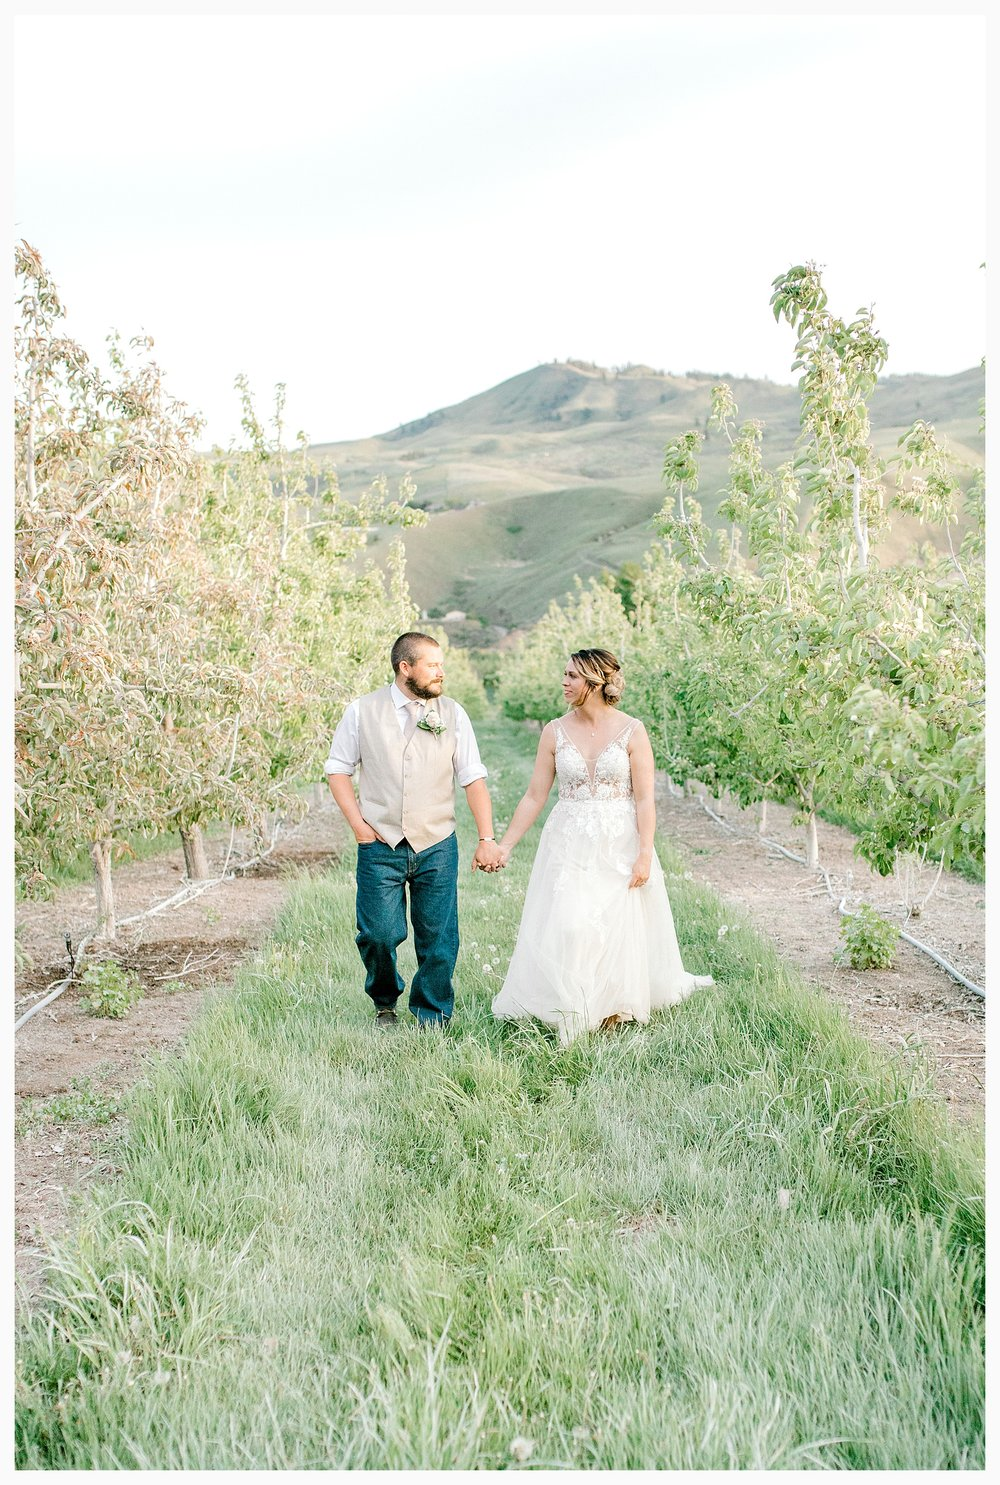 Rustic barn wedding in Wenatchee Washington at Sunshine Ranch on Easy Street, Emma Rose Company Seattle PNW Light and Airy Wedding Photographer_0140.jpg